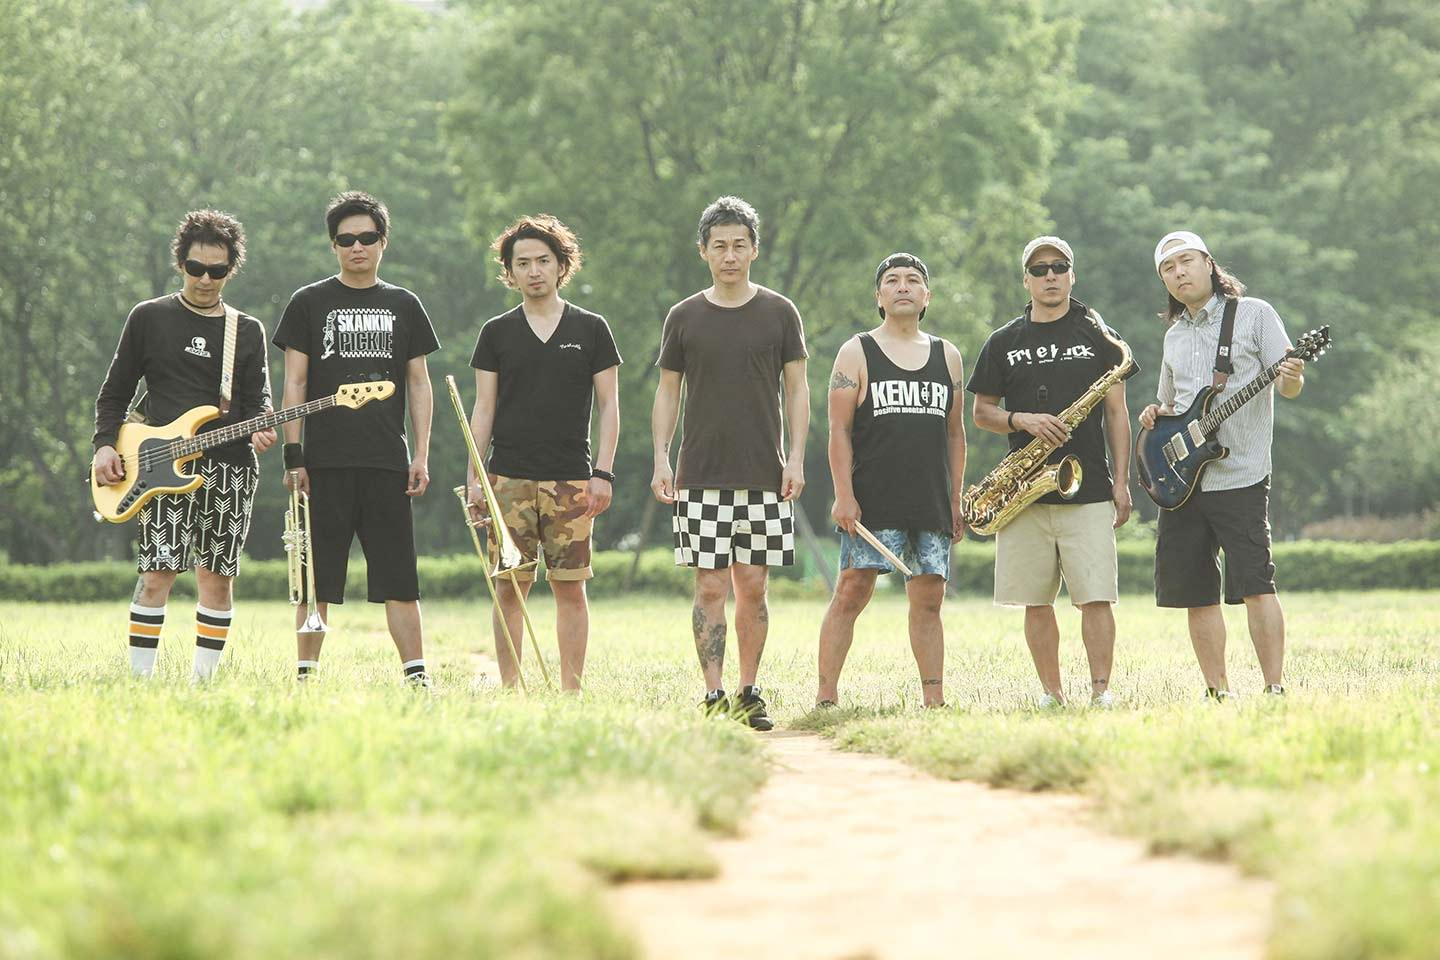 KEMURI band Japanese ska punk